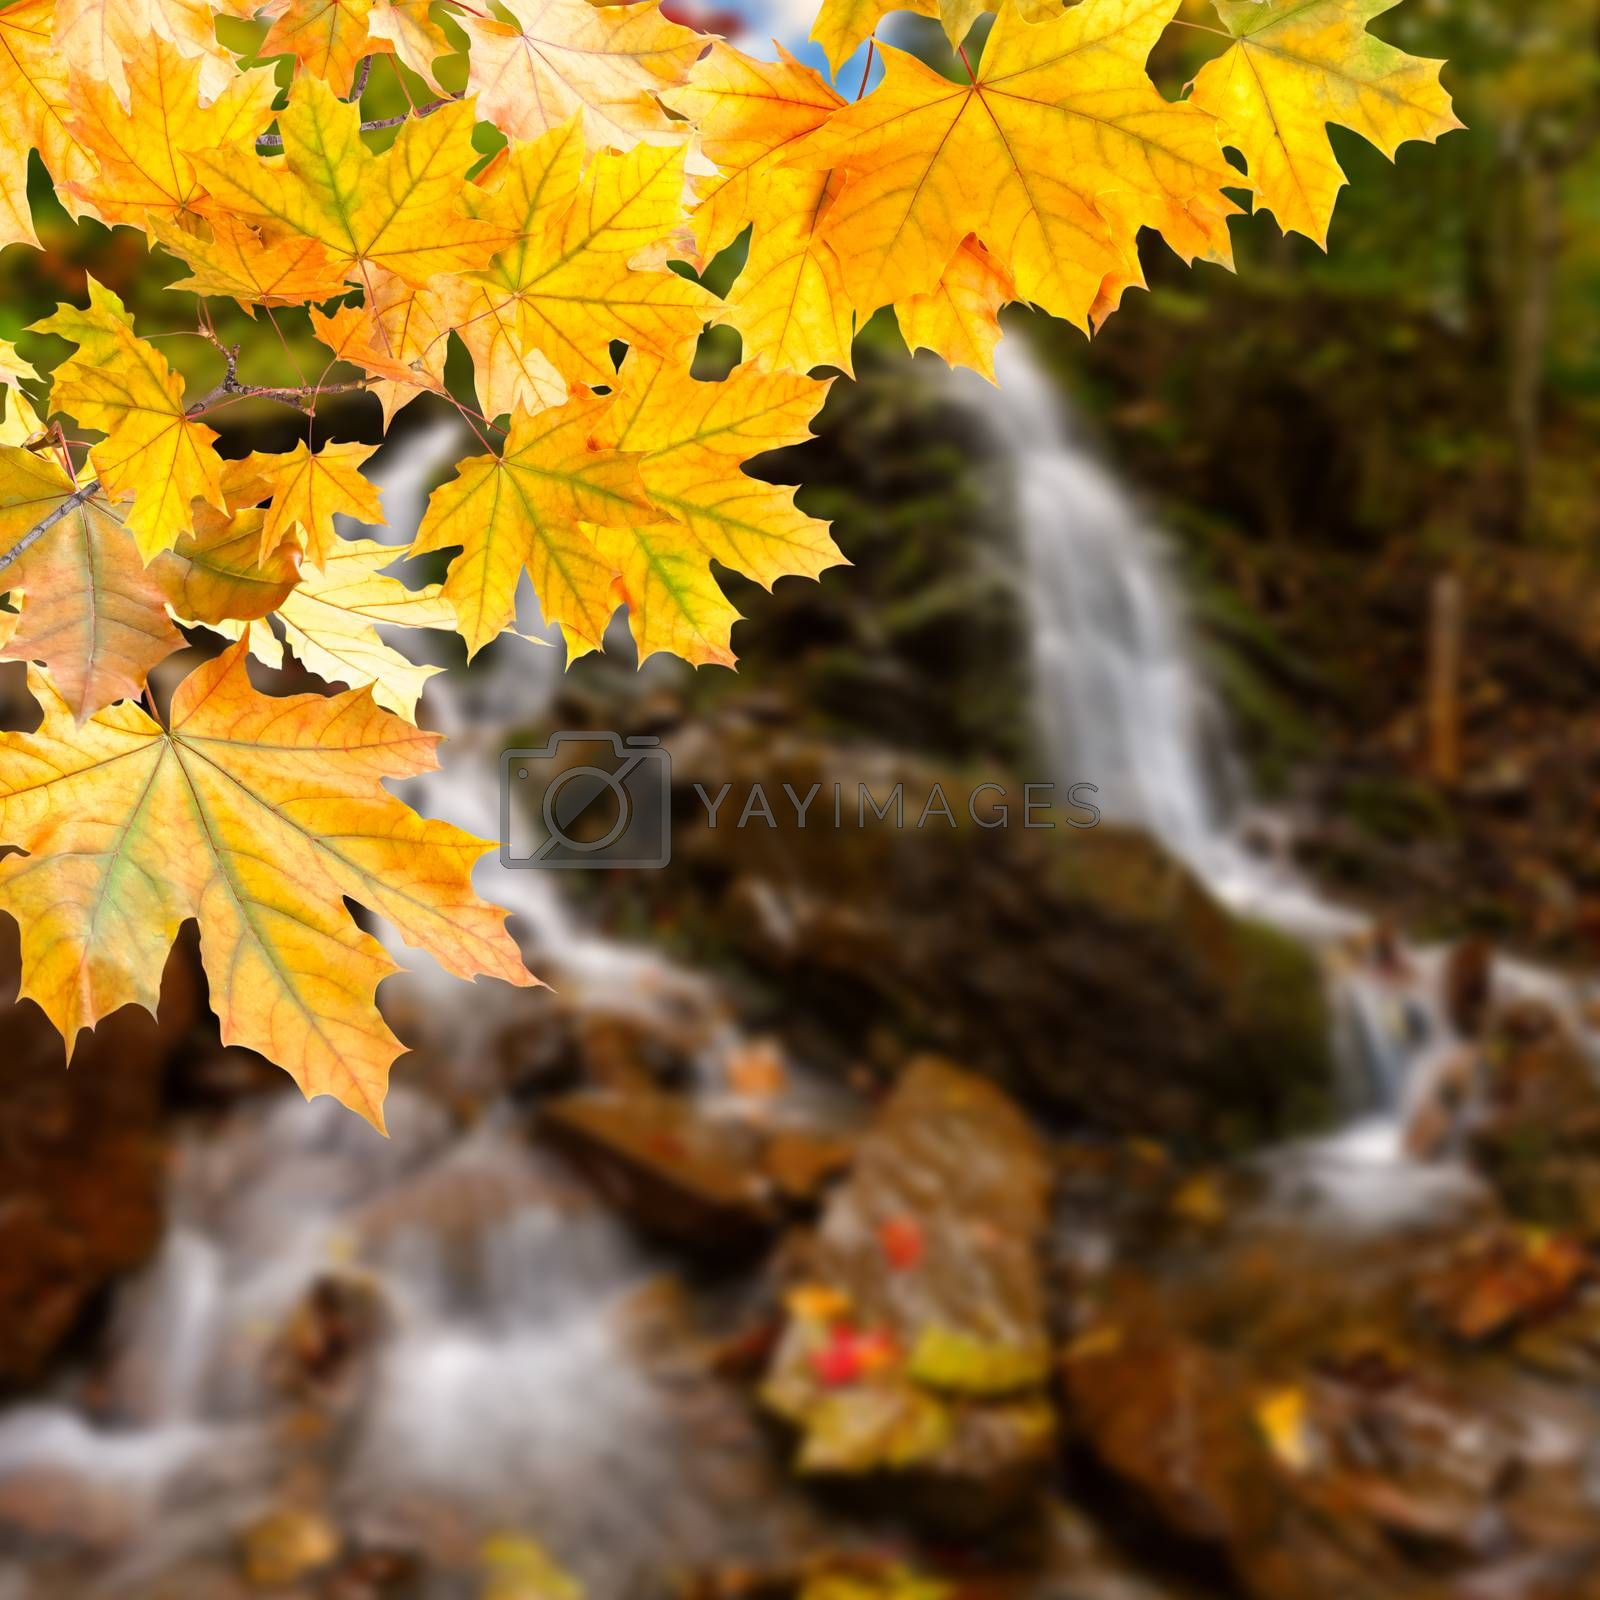 Royalty free image of Autumn background by firewings